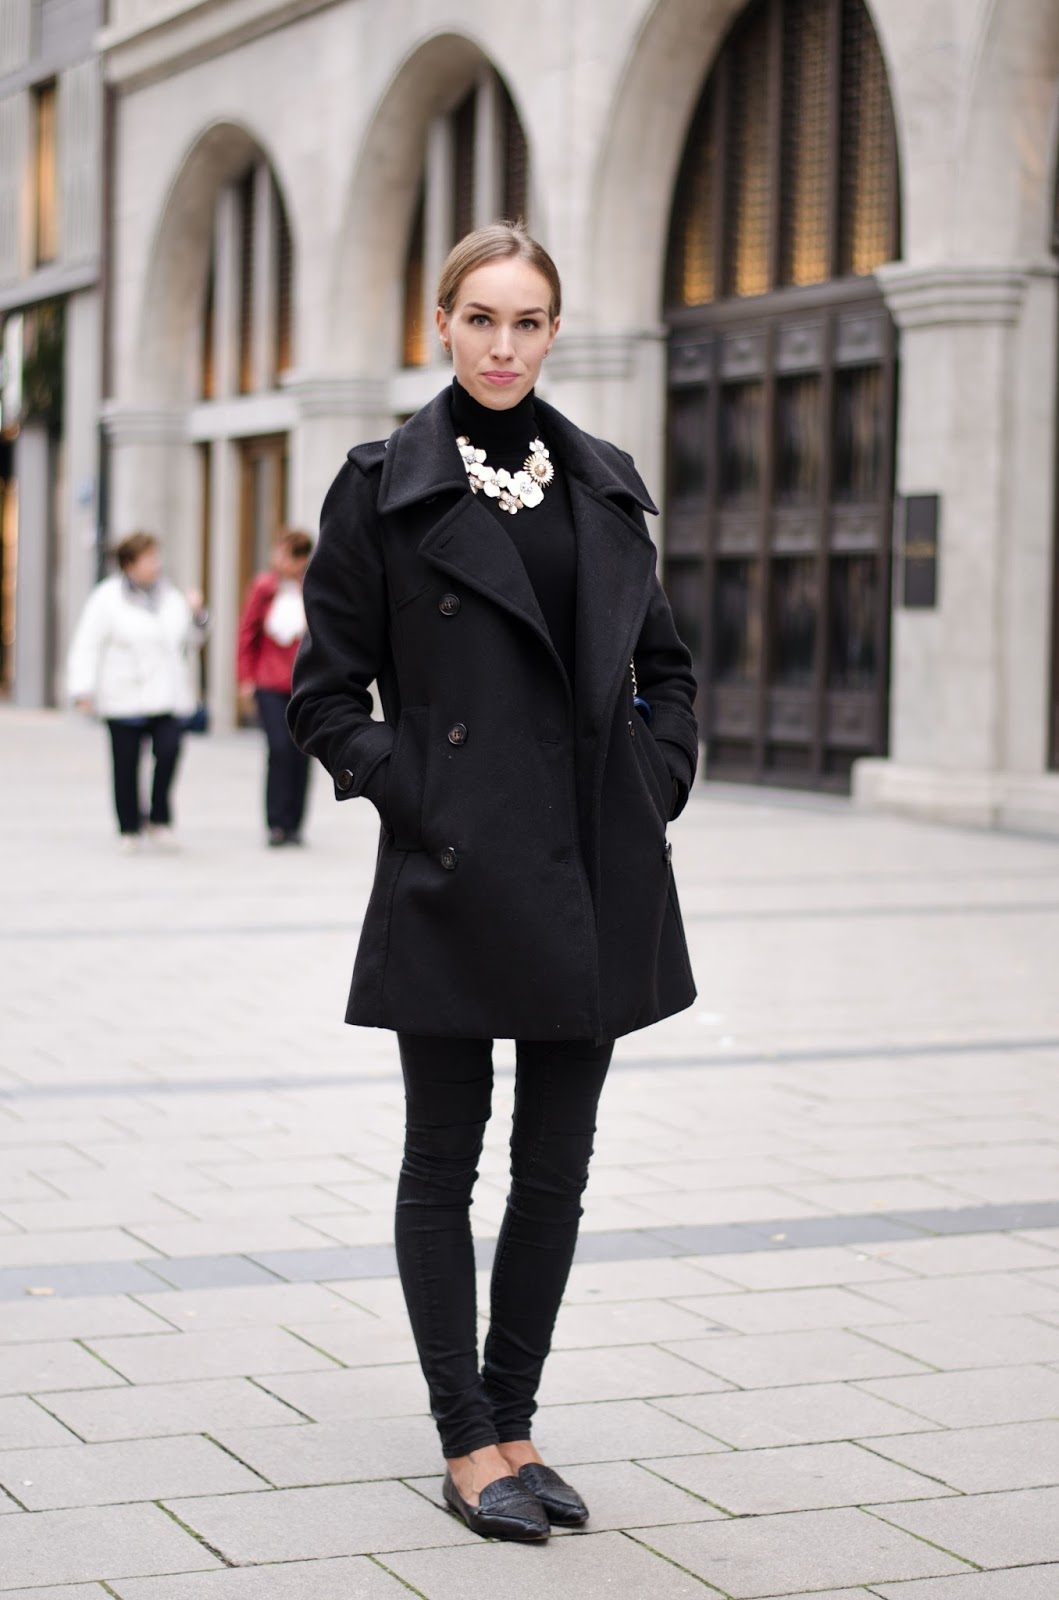 kristjaana mere all black fall outfit with statement necklace